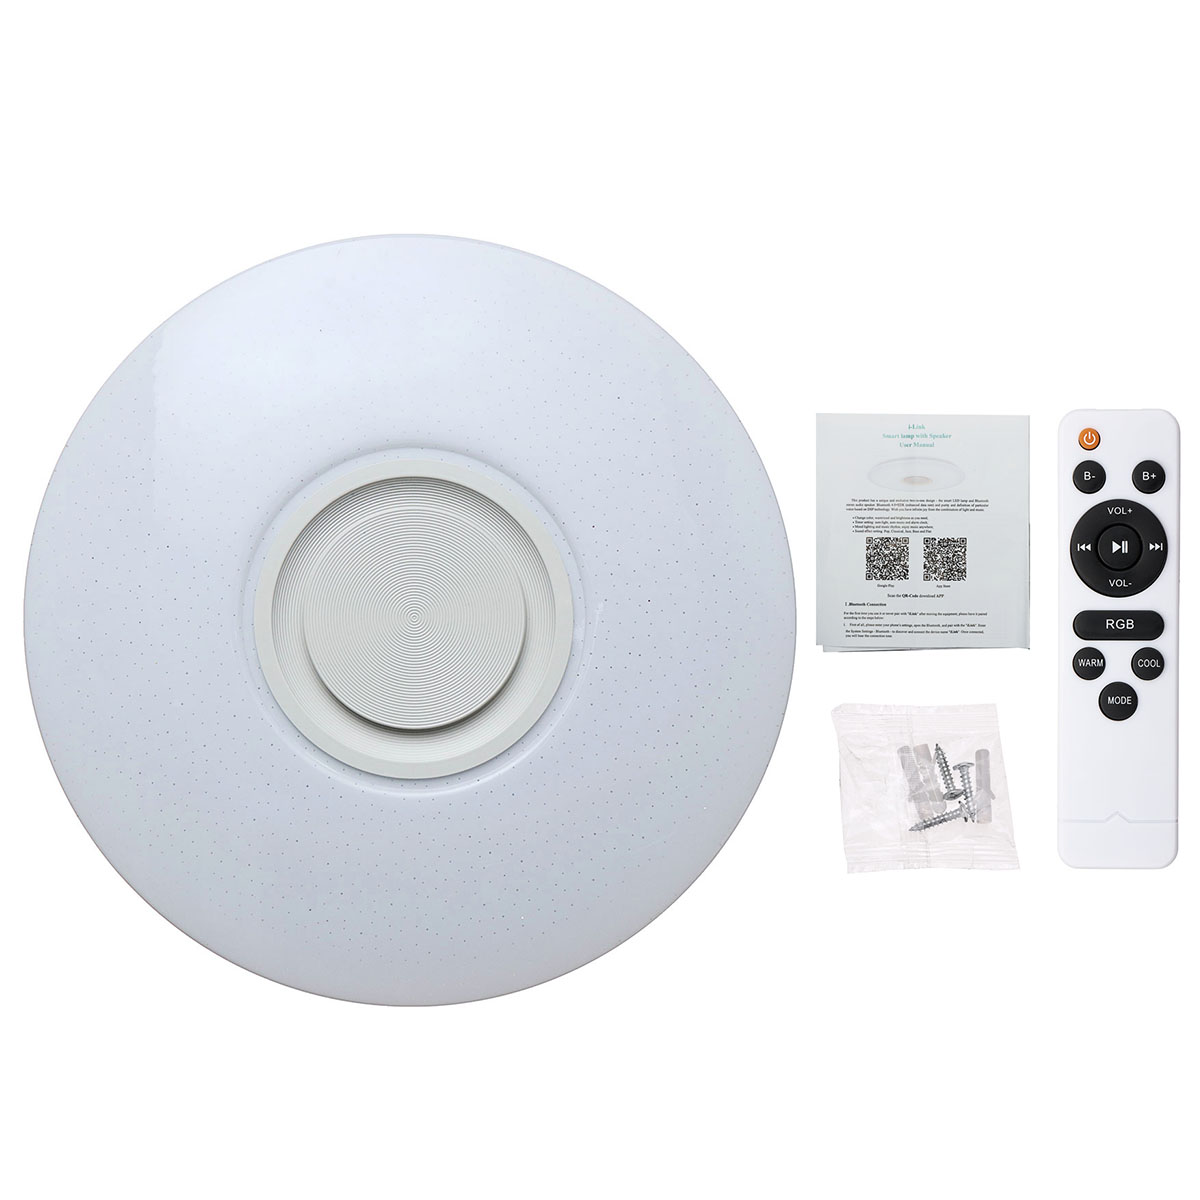 Smuxi 60W 102LED bluetooth LED Music Ceiling Lights Starry APP/Remote Control Dimming RGB bluetooth LED Lamp AC180-240V Fixtures